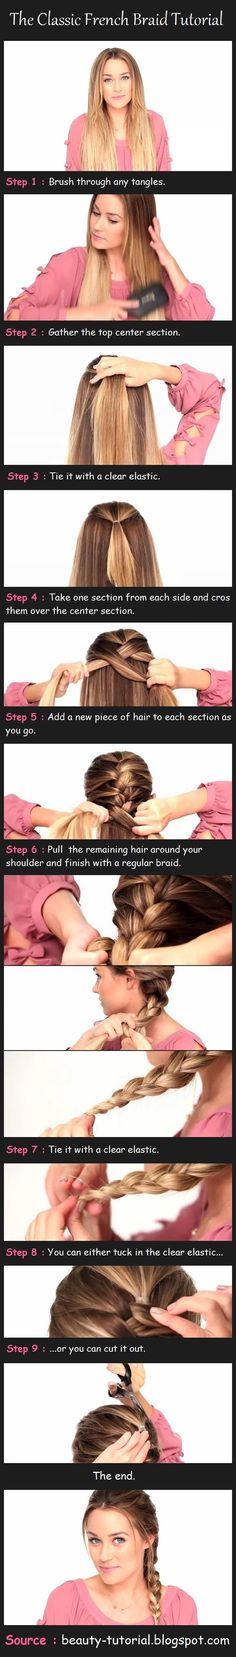 .French braid made easy! Need to do!